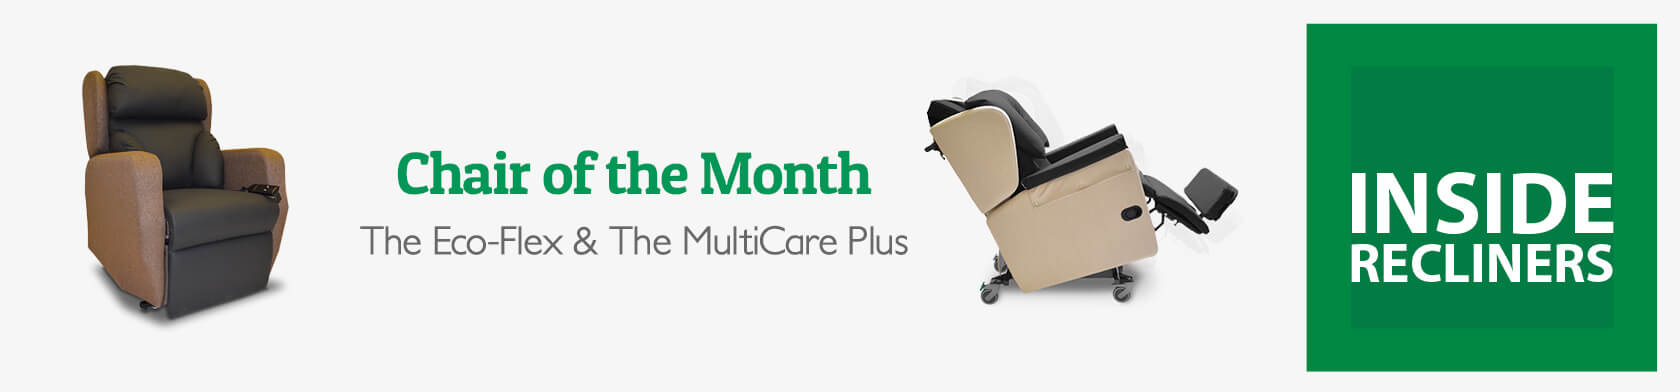 Chair of the Month – The Eco-Flex & The MultiCare Plus